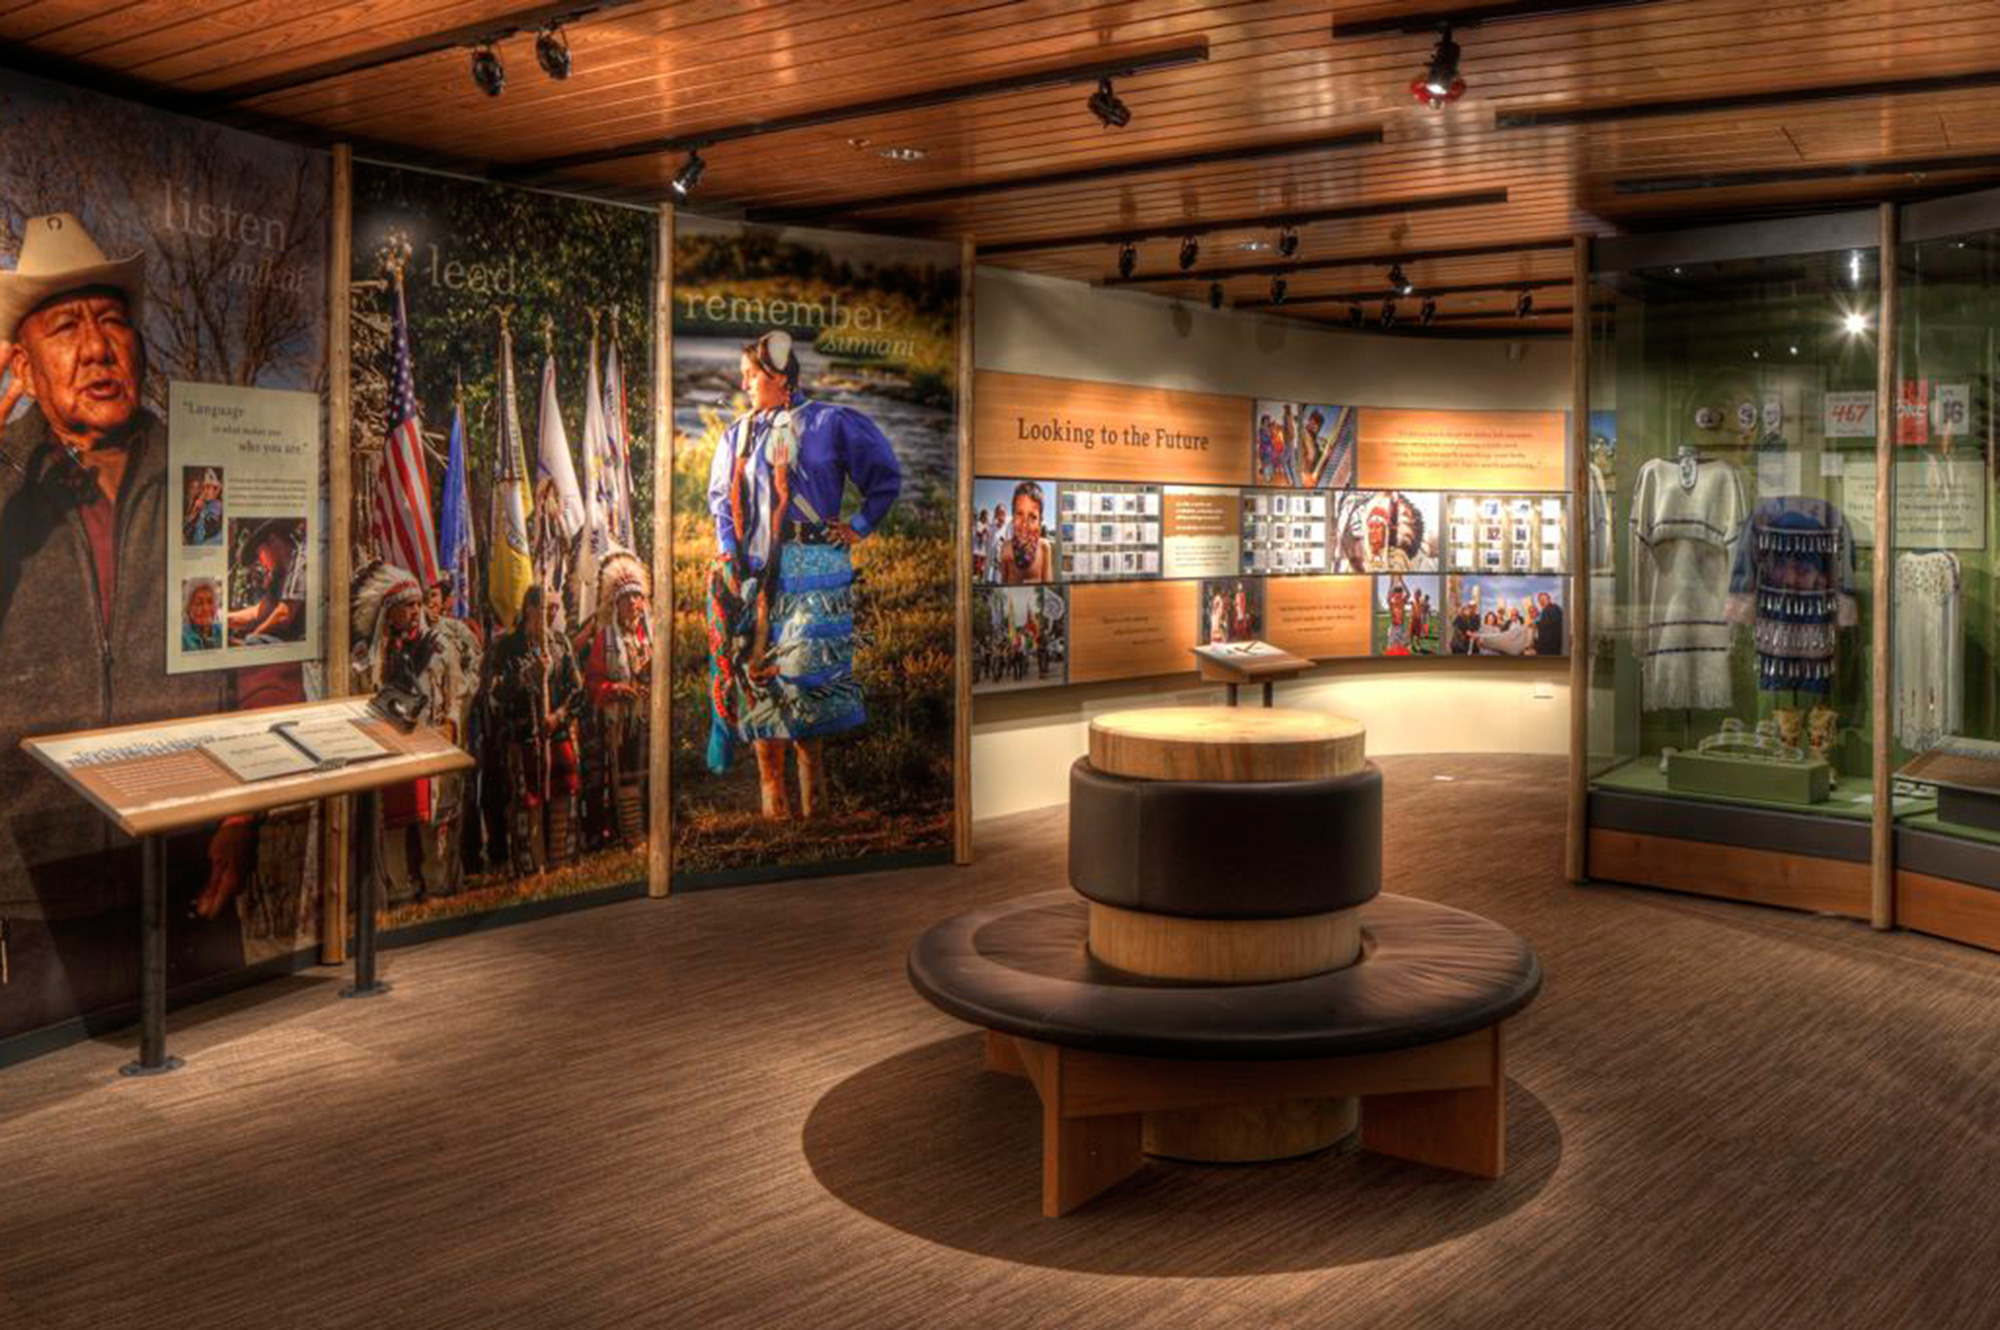 southern ute cultural center and museum